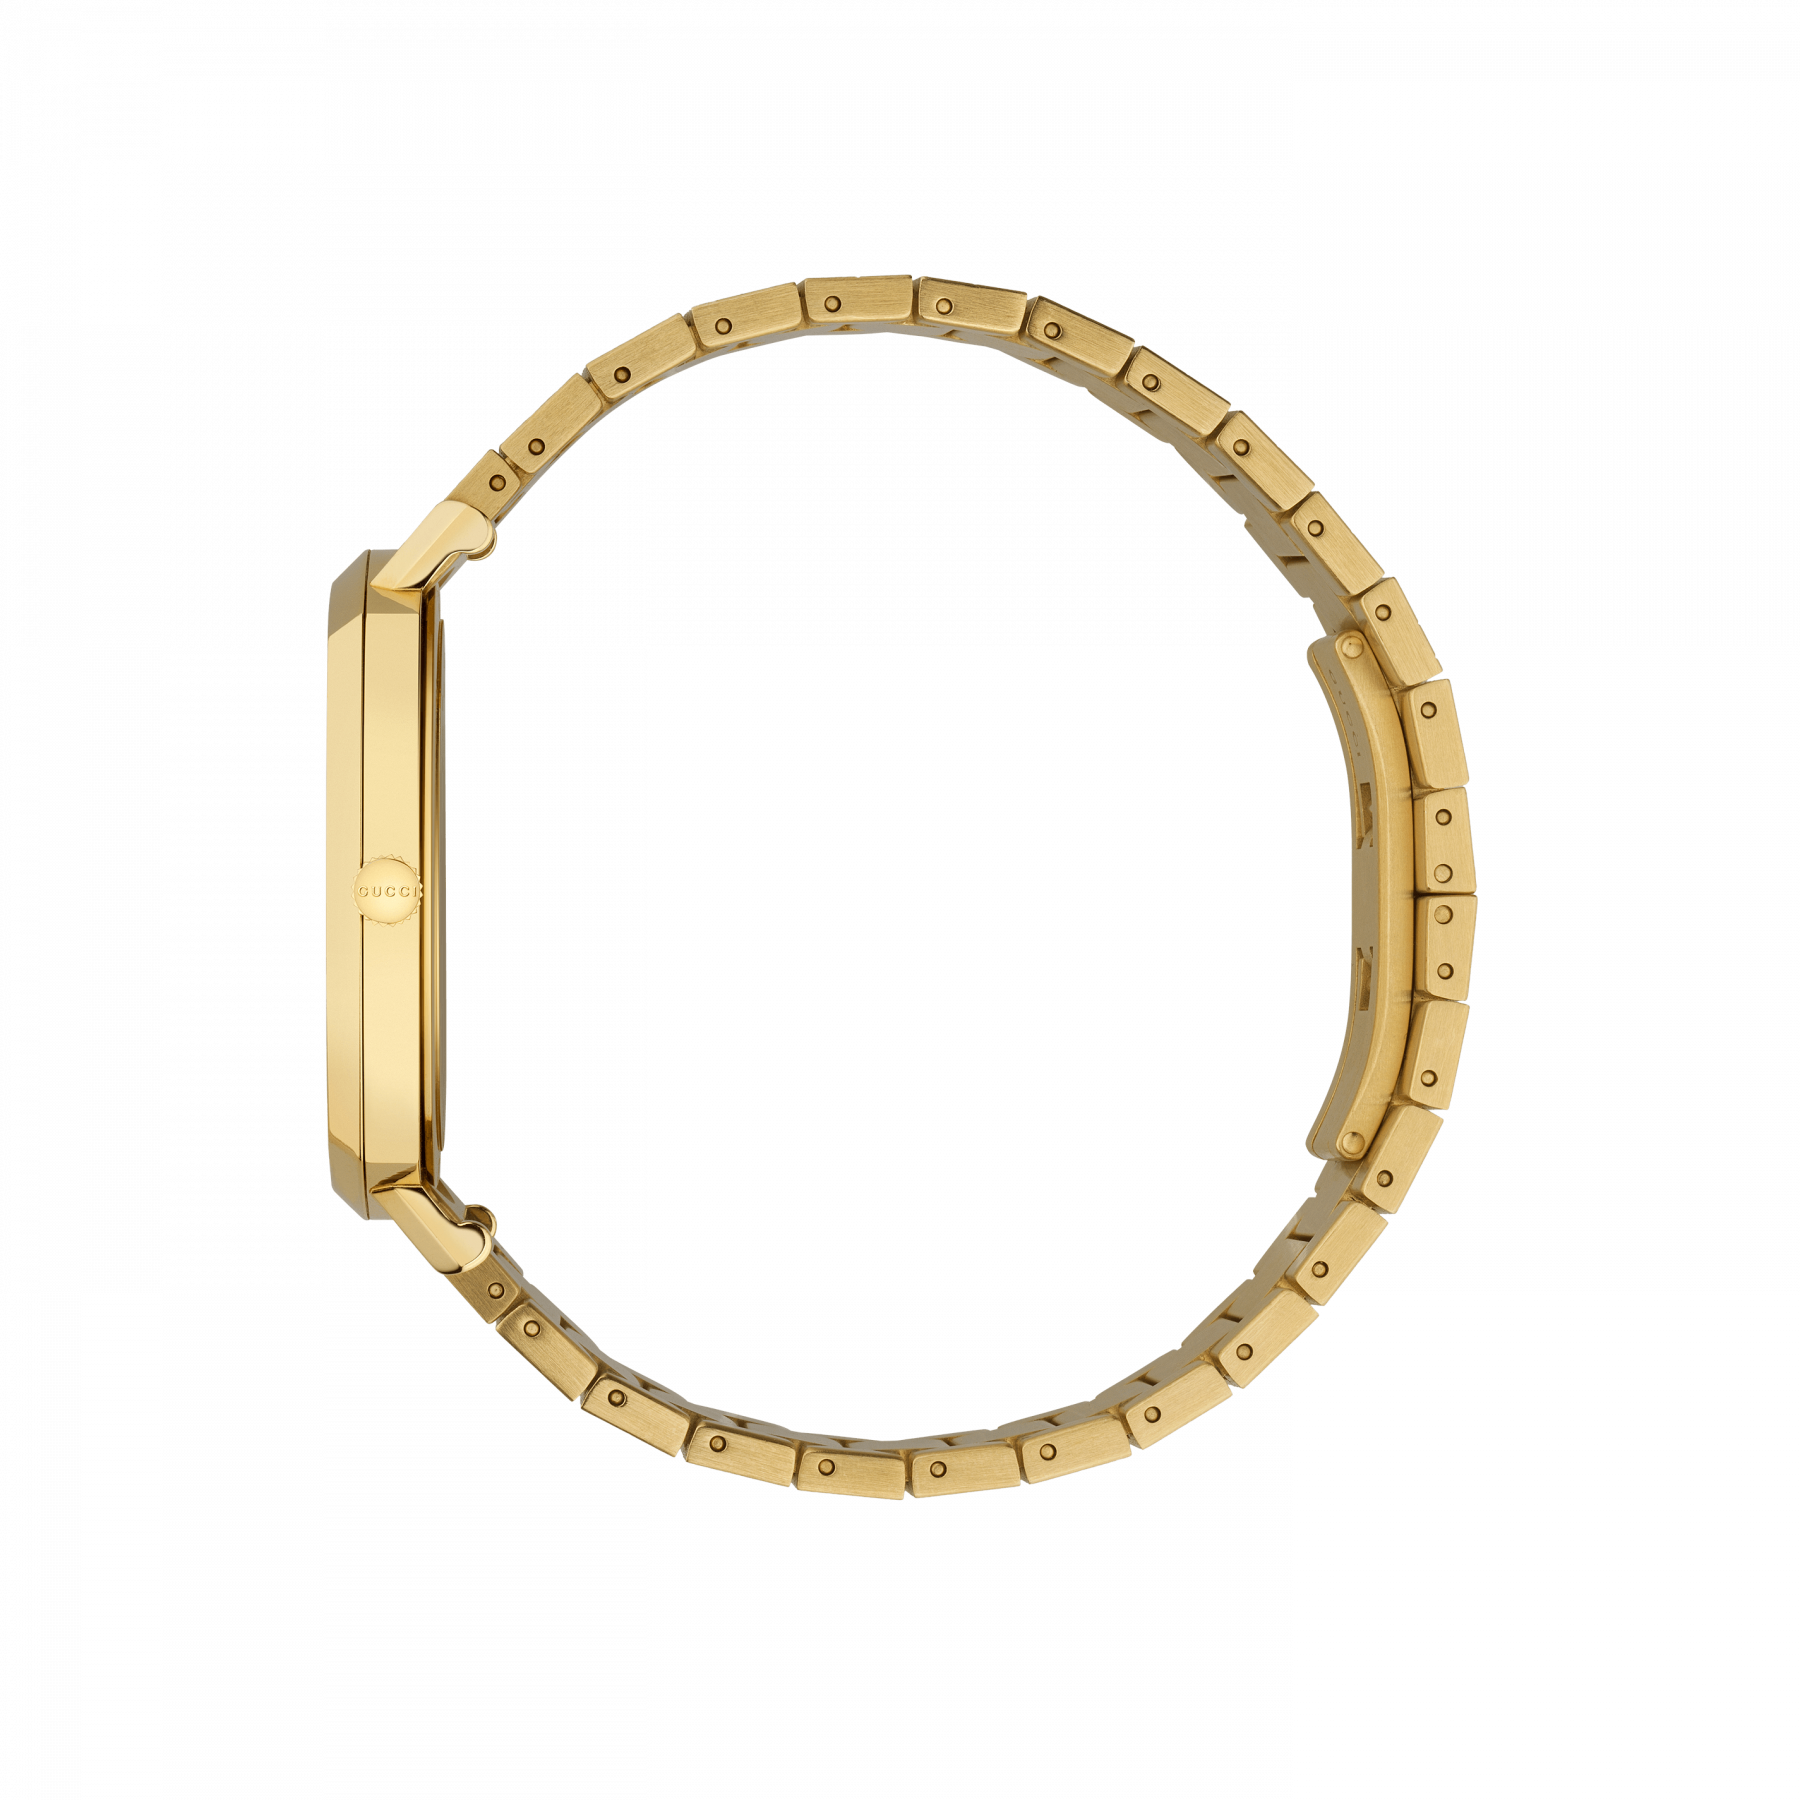 Gucci Grip 38mm Yellow Gold Watch side view